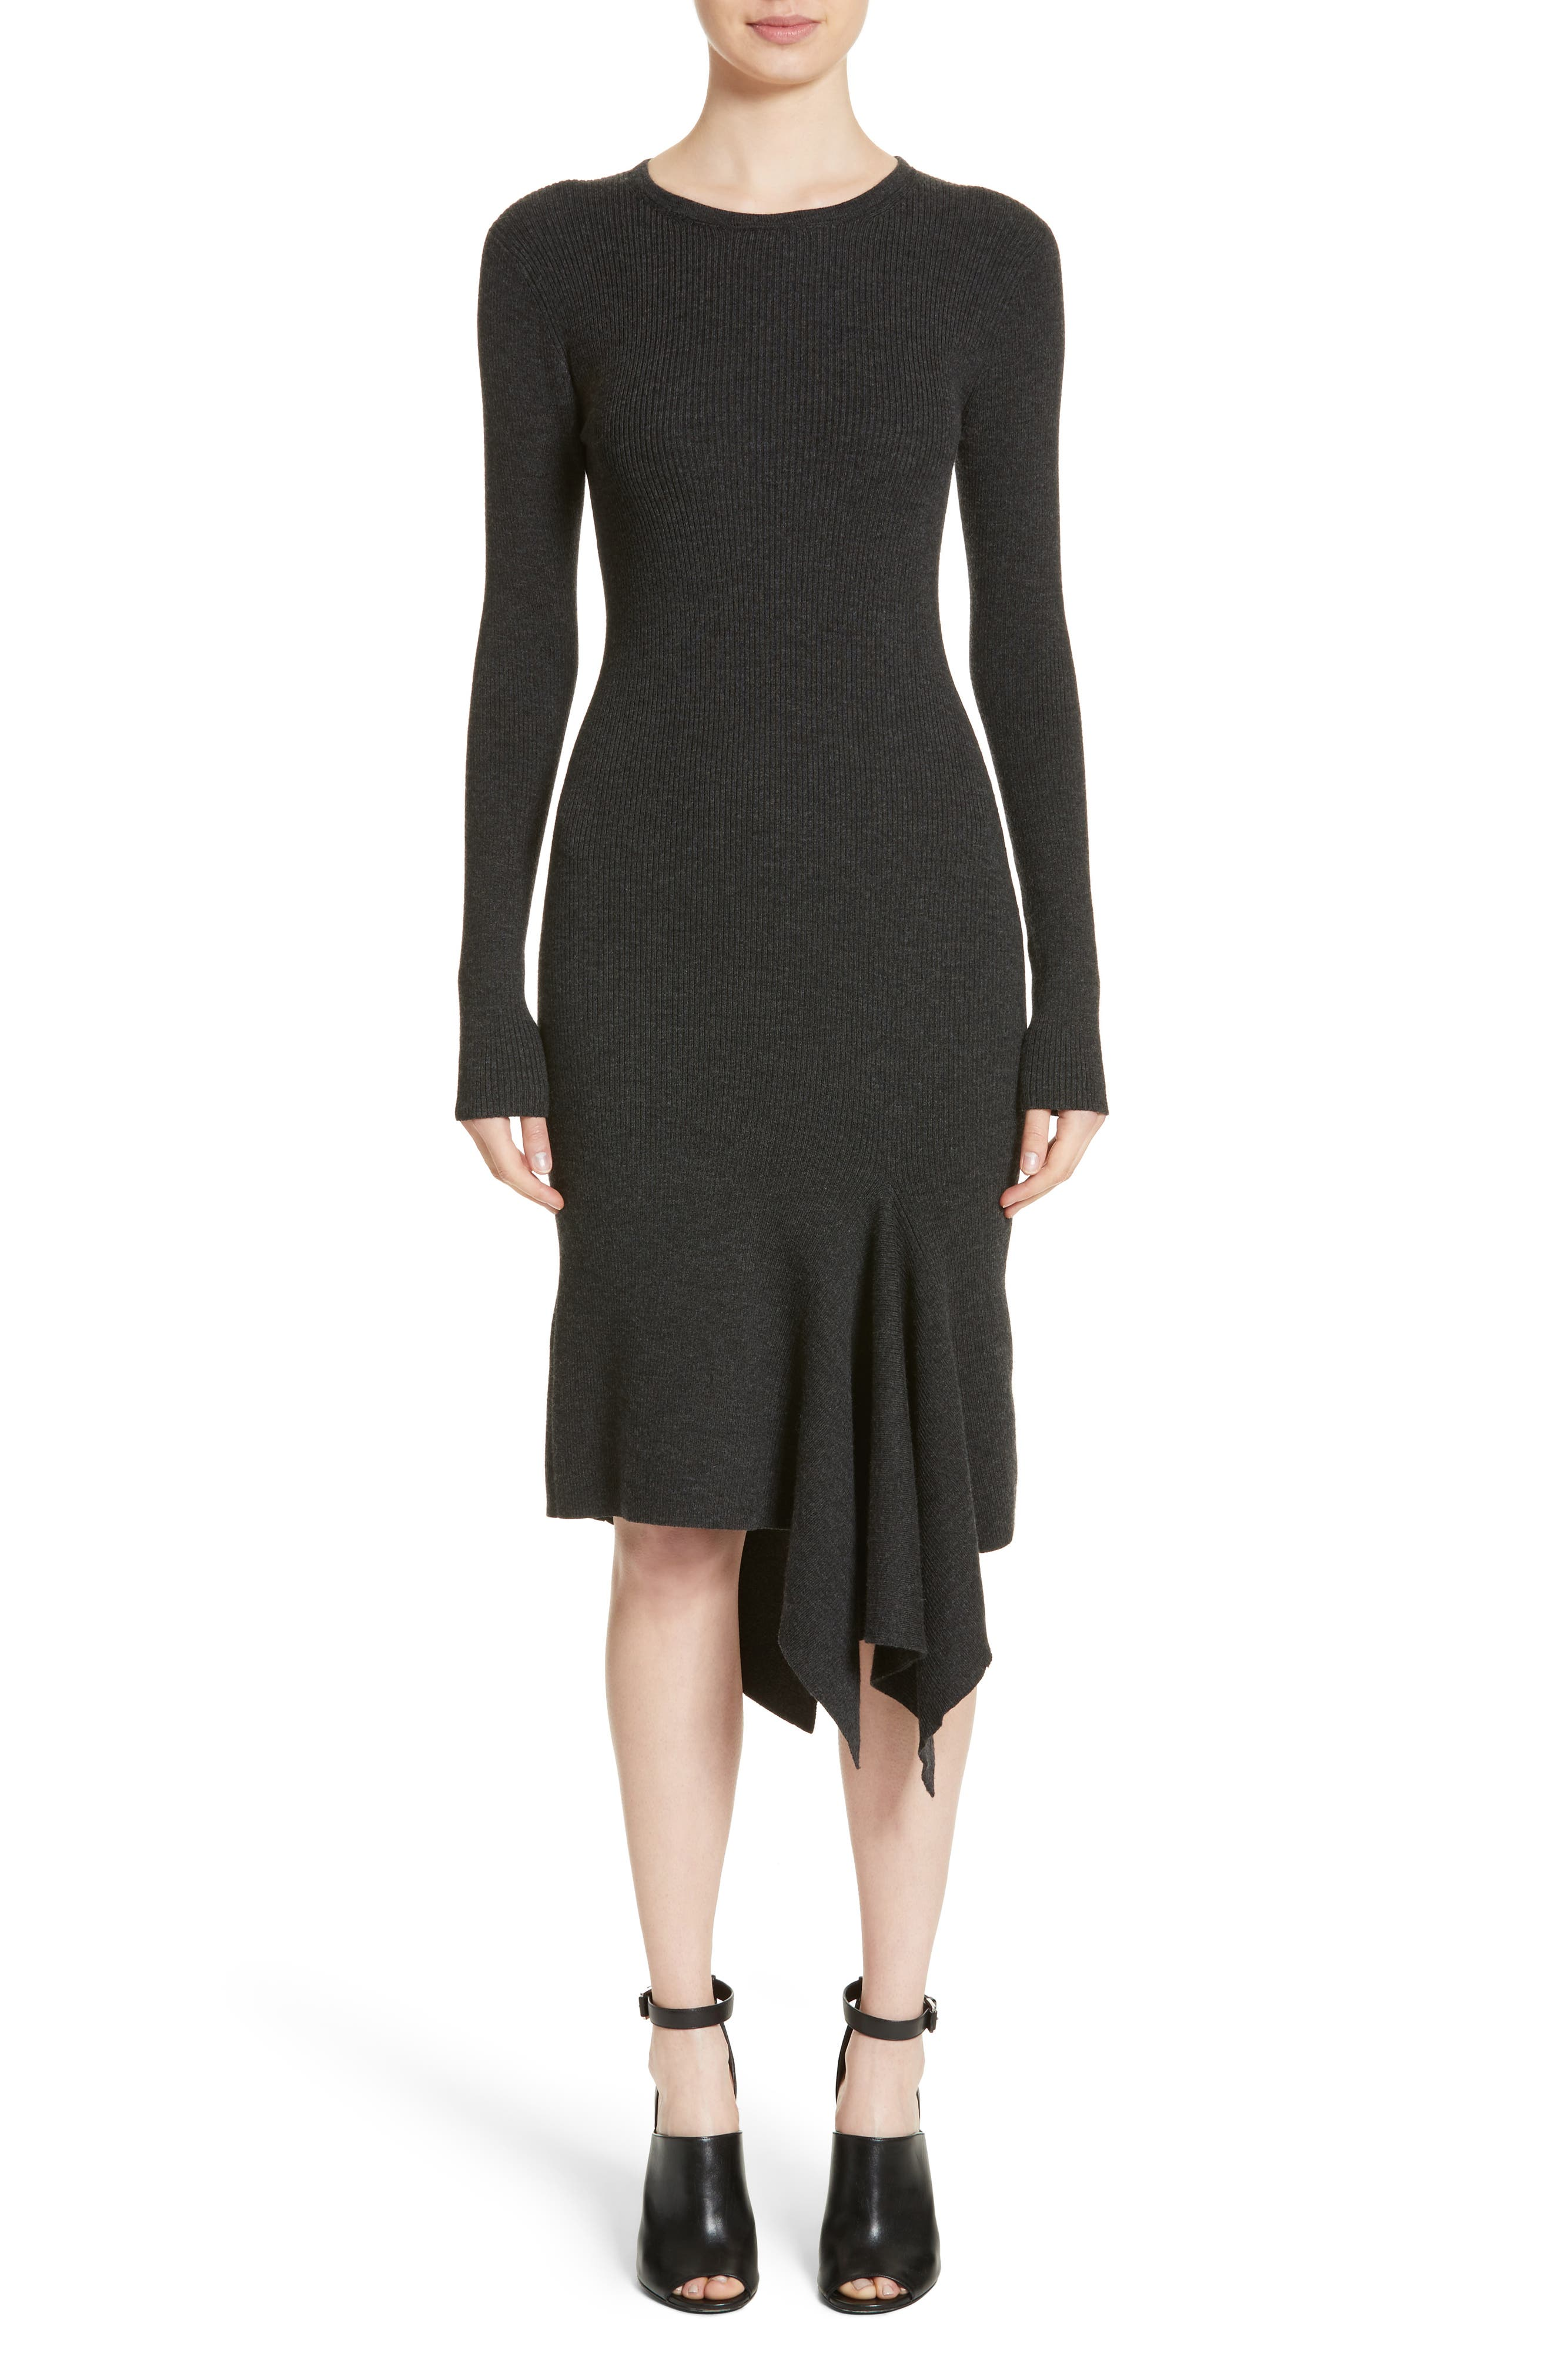 Alternate Image 1 Selected - Michael Kors Merino Wool Blend Handkerchief Hem Dress